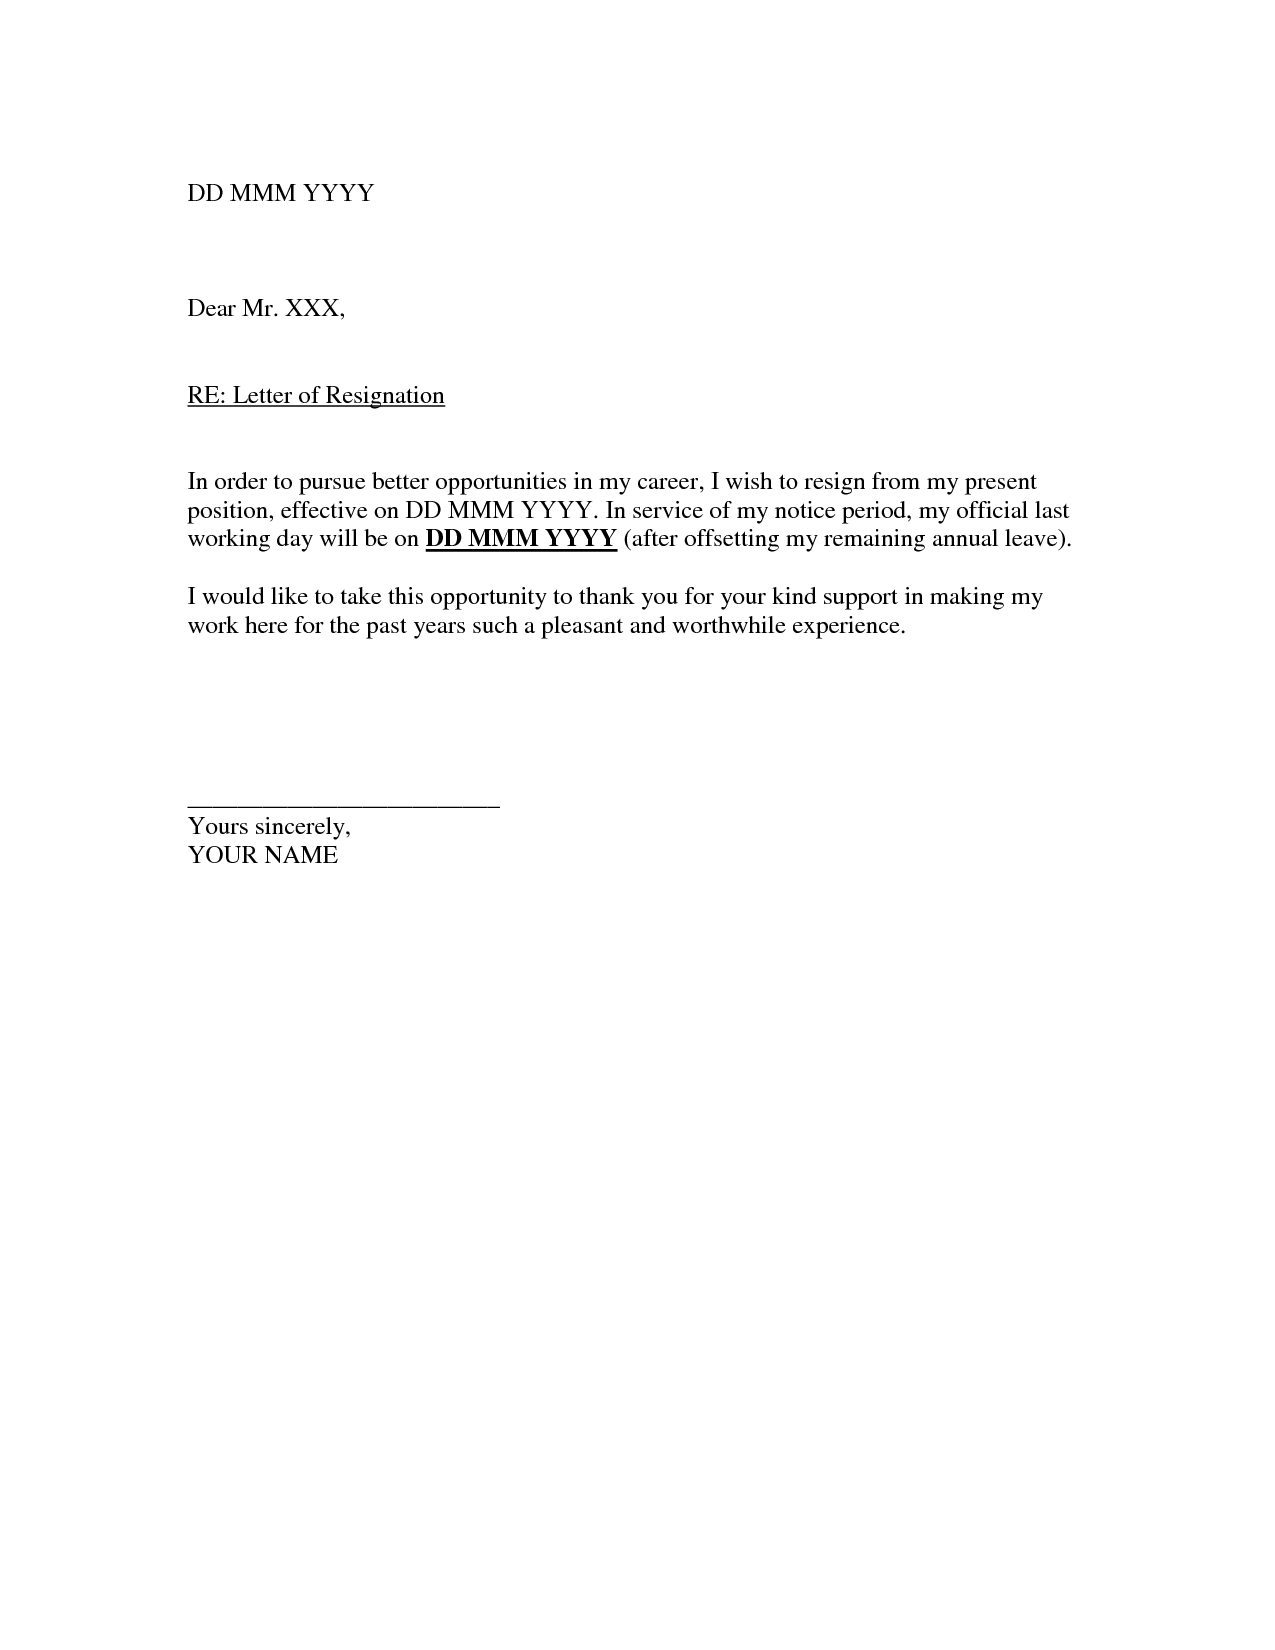 letter of resignation examples related to resignation letter template letters of 630